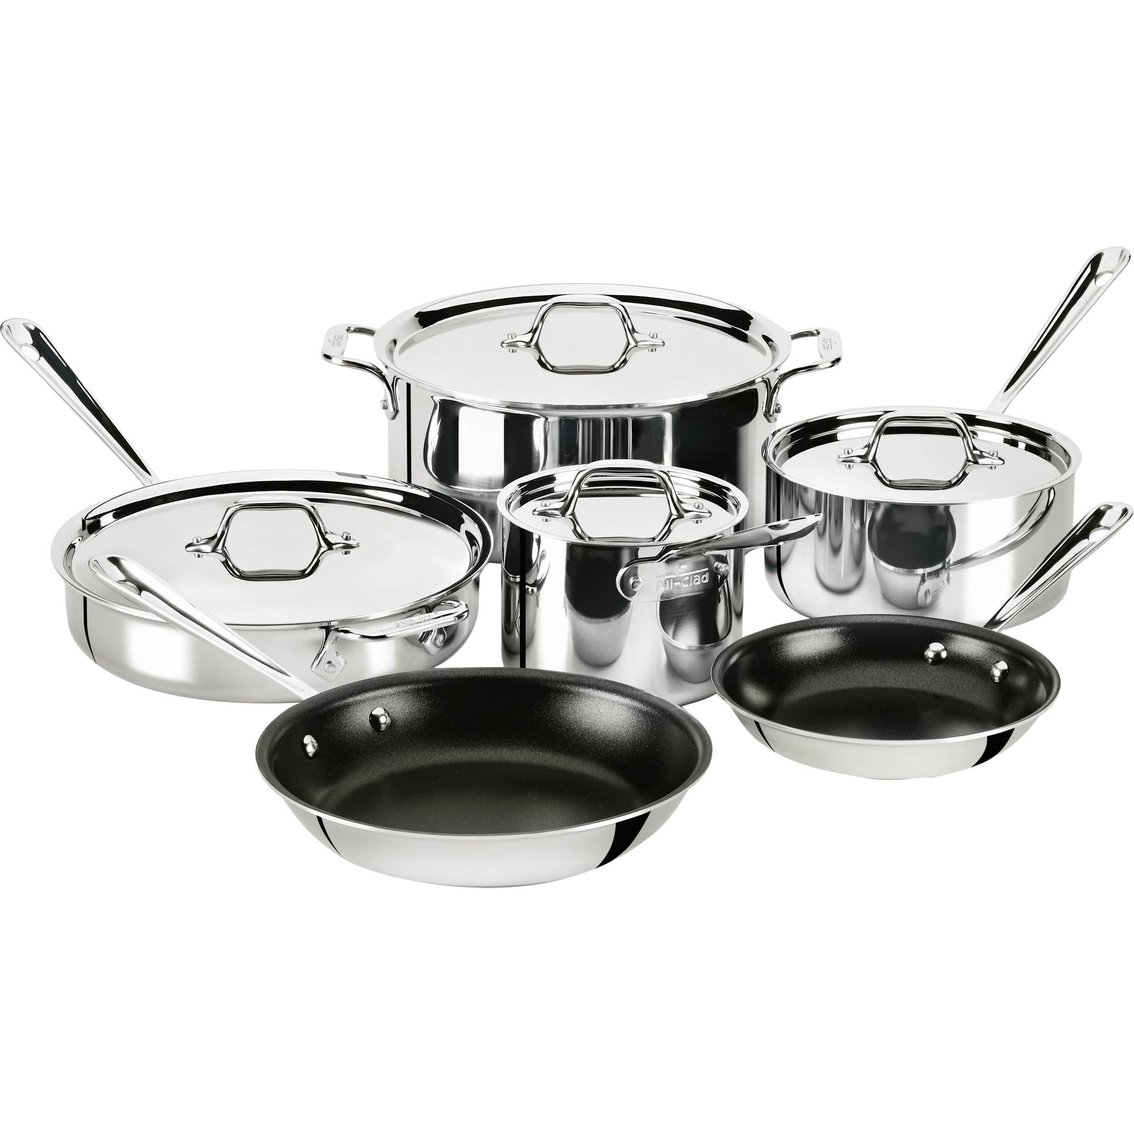 All Clad Stainless Steel 10 Pc Nonstick Cookware Set